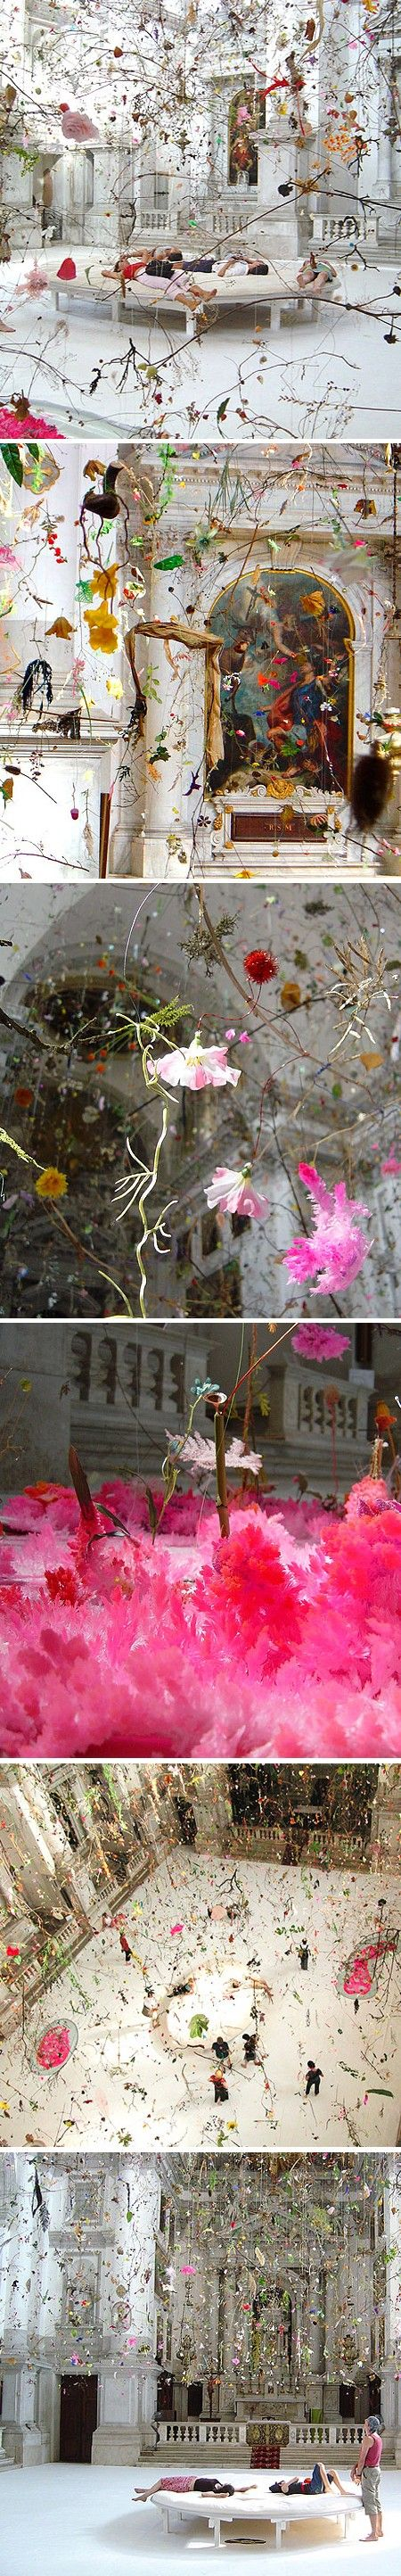 Falling Garden, and is the work of collaborating Swiss artists, Gerda Steiner and Jörg Lenzlinger